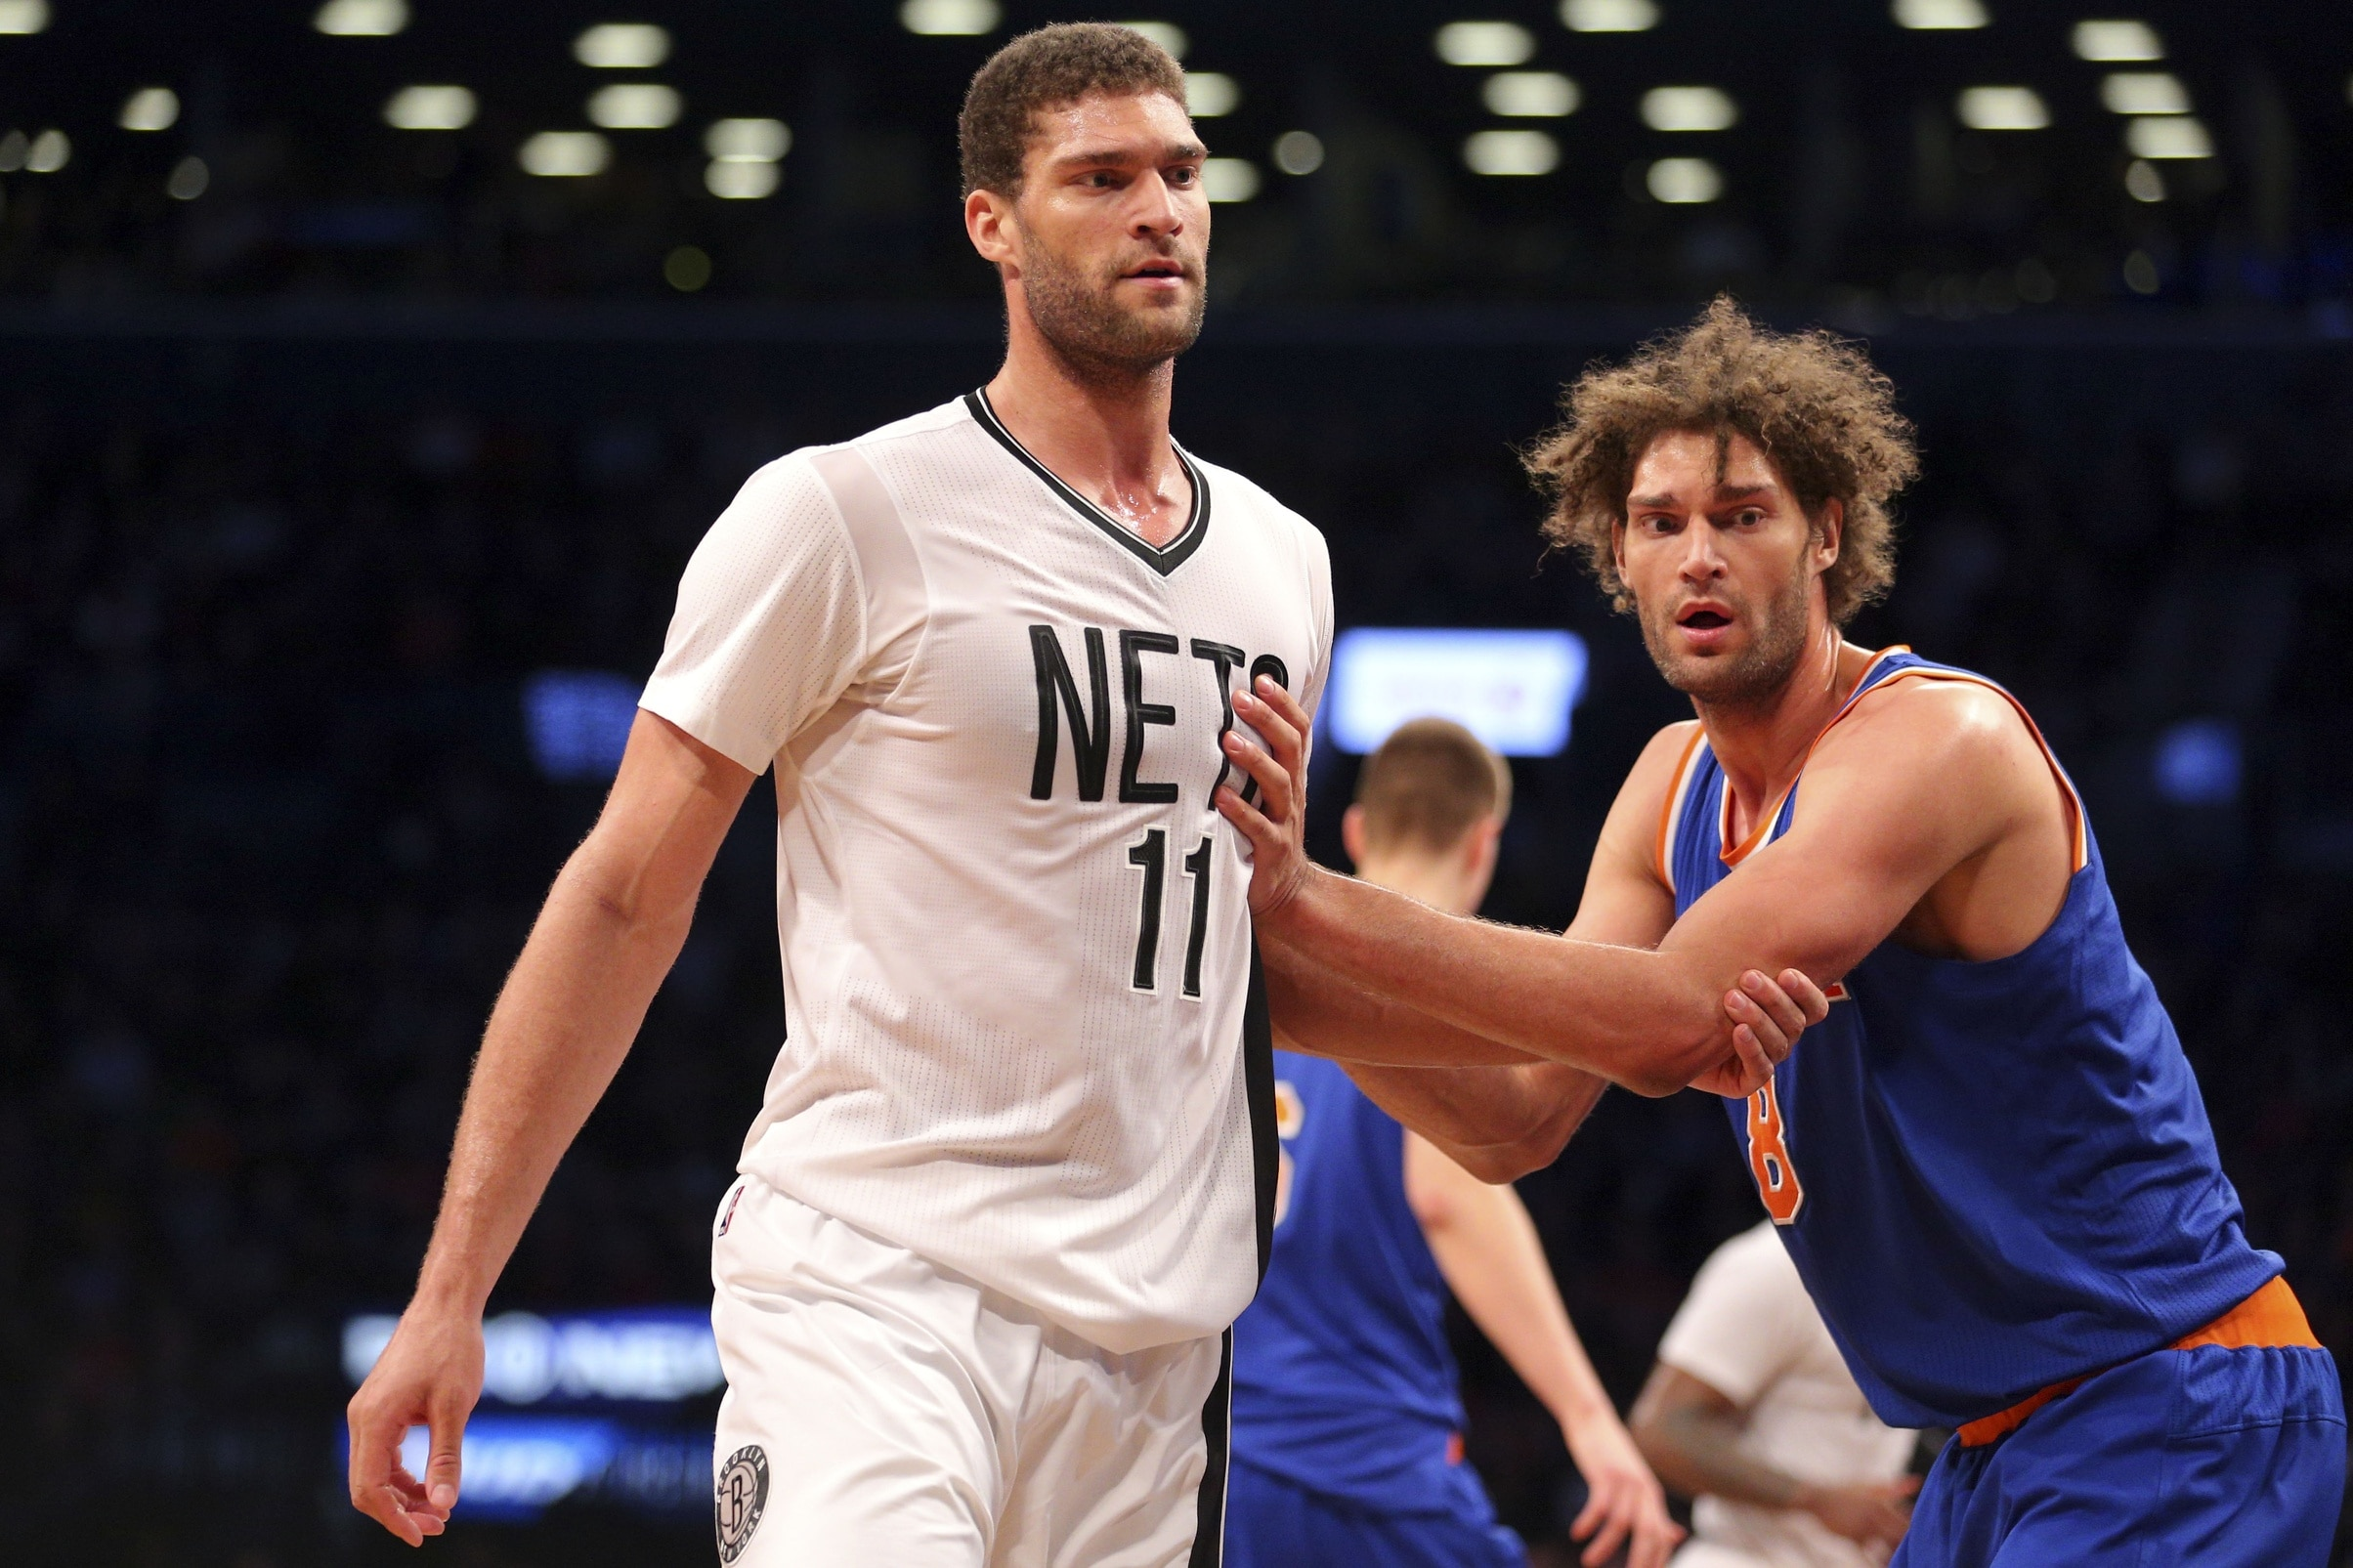 Feb 19, 2016; Brooklyn, NY, USA; New York Knicks center Robin Lopez (8) guards his brother Brooklyn Nets center Brook Lopez (11) during the fourth quarter at Barclays Center. The Nets defeated the Knicks 109-98. Mandatory Credit: Brad Penner-USA TODAY Sports